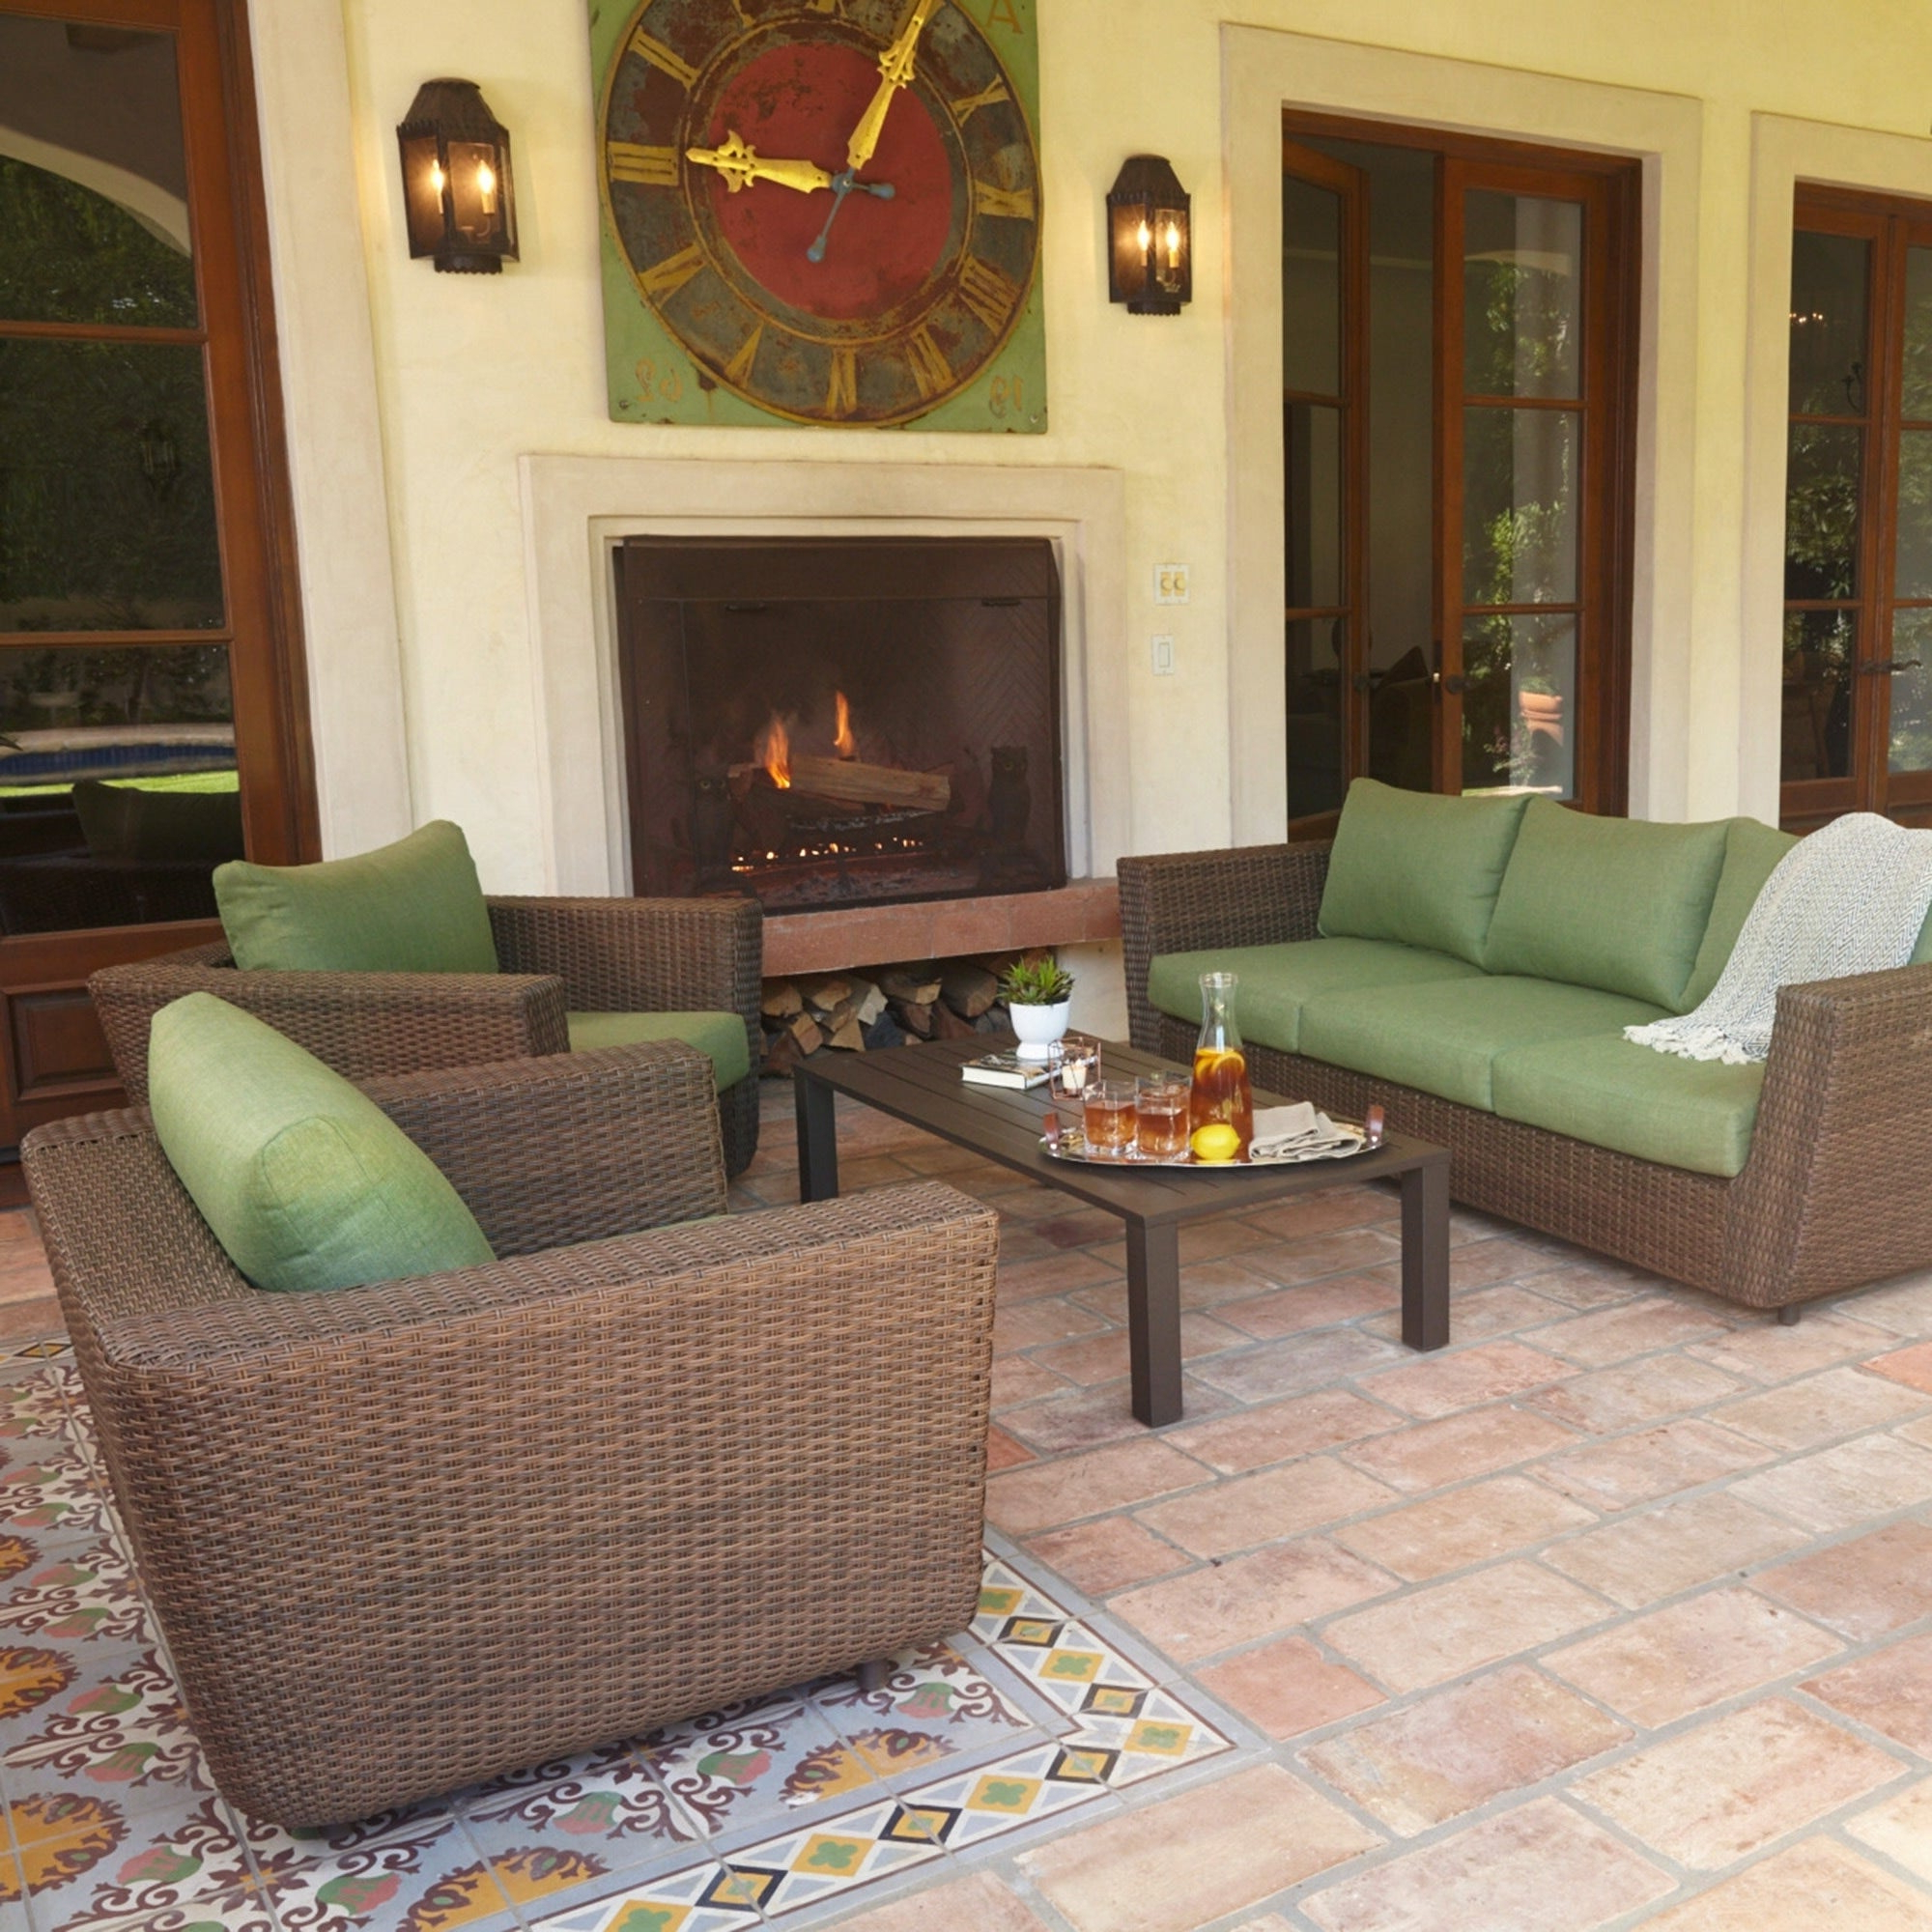 Greta Living Patio Sectionals With Cushions Regarding Most Recent Greta Outdoor 4 Piece Wicker Furniture Set, 3 Seat Sofa And Lounge Chairs  With Green Cushions, Aluminum Frame (View 5 of 20)